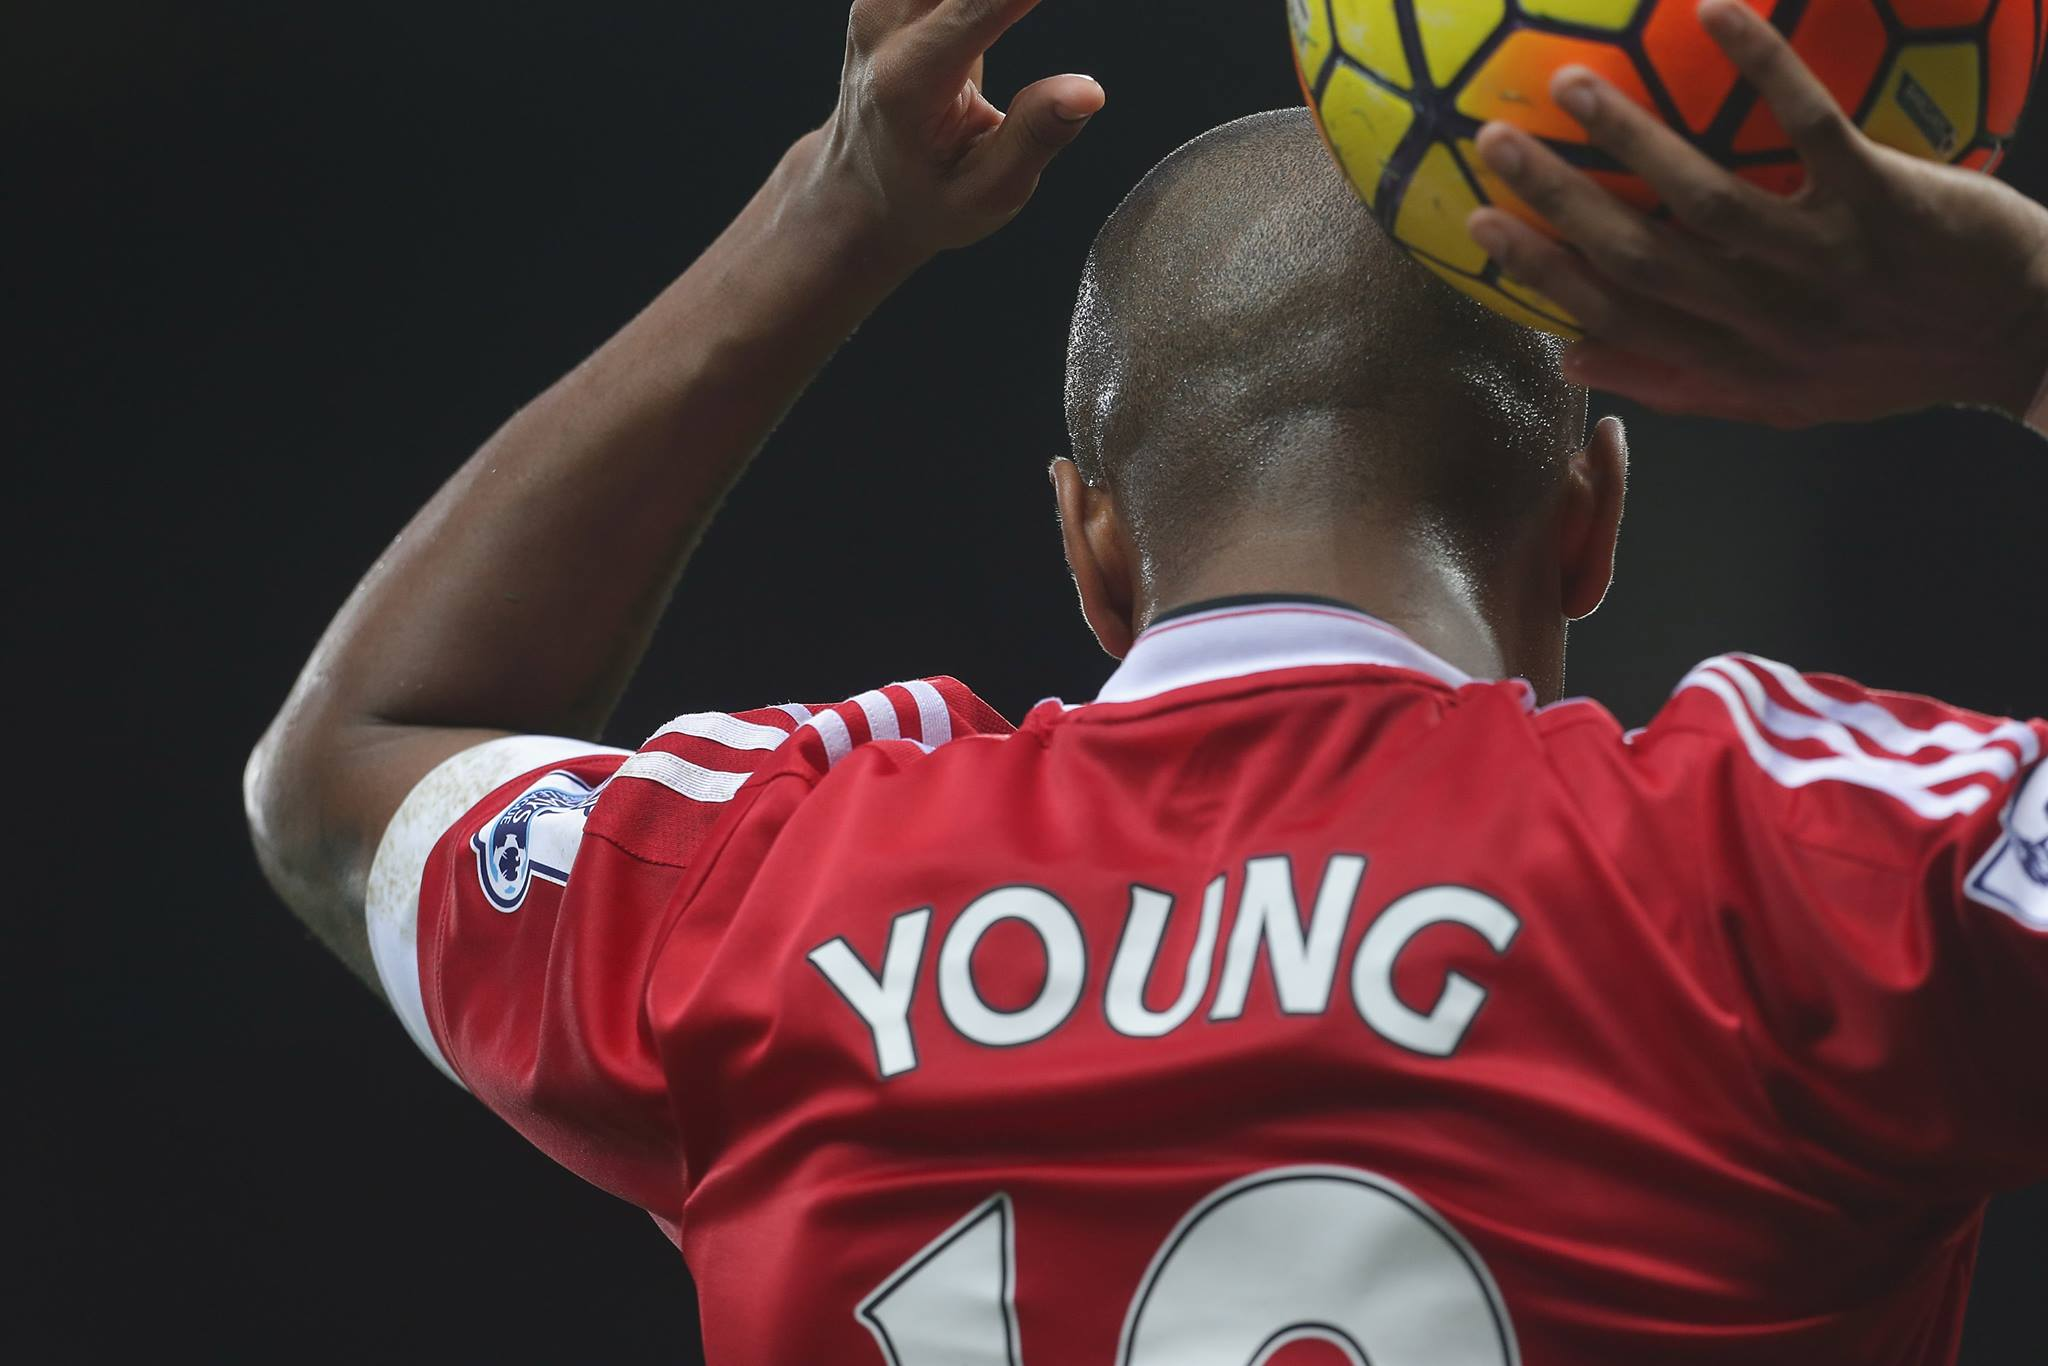 Ashley Young - FOTO: account ufficiale Facebook Ashley Young